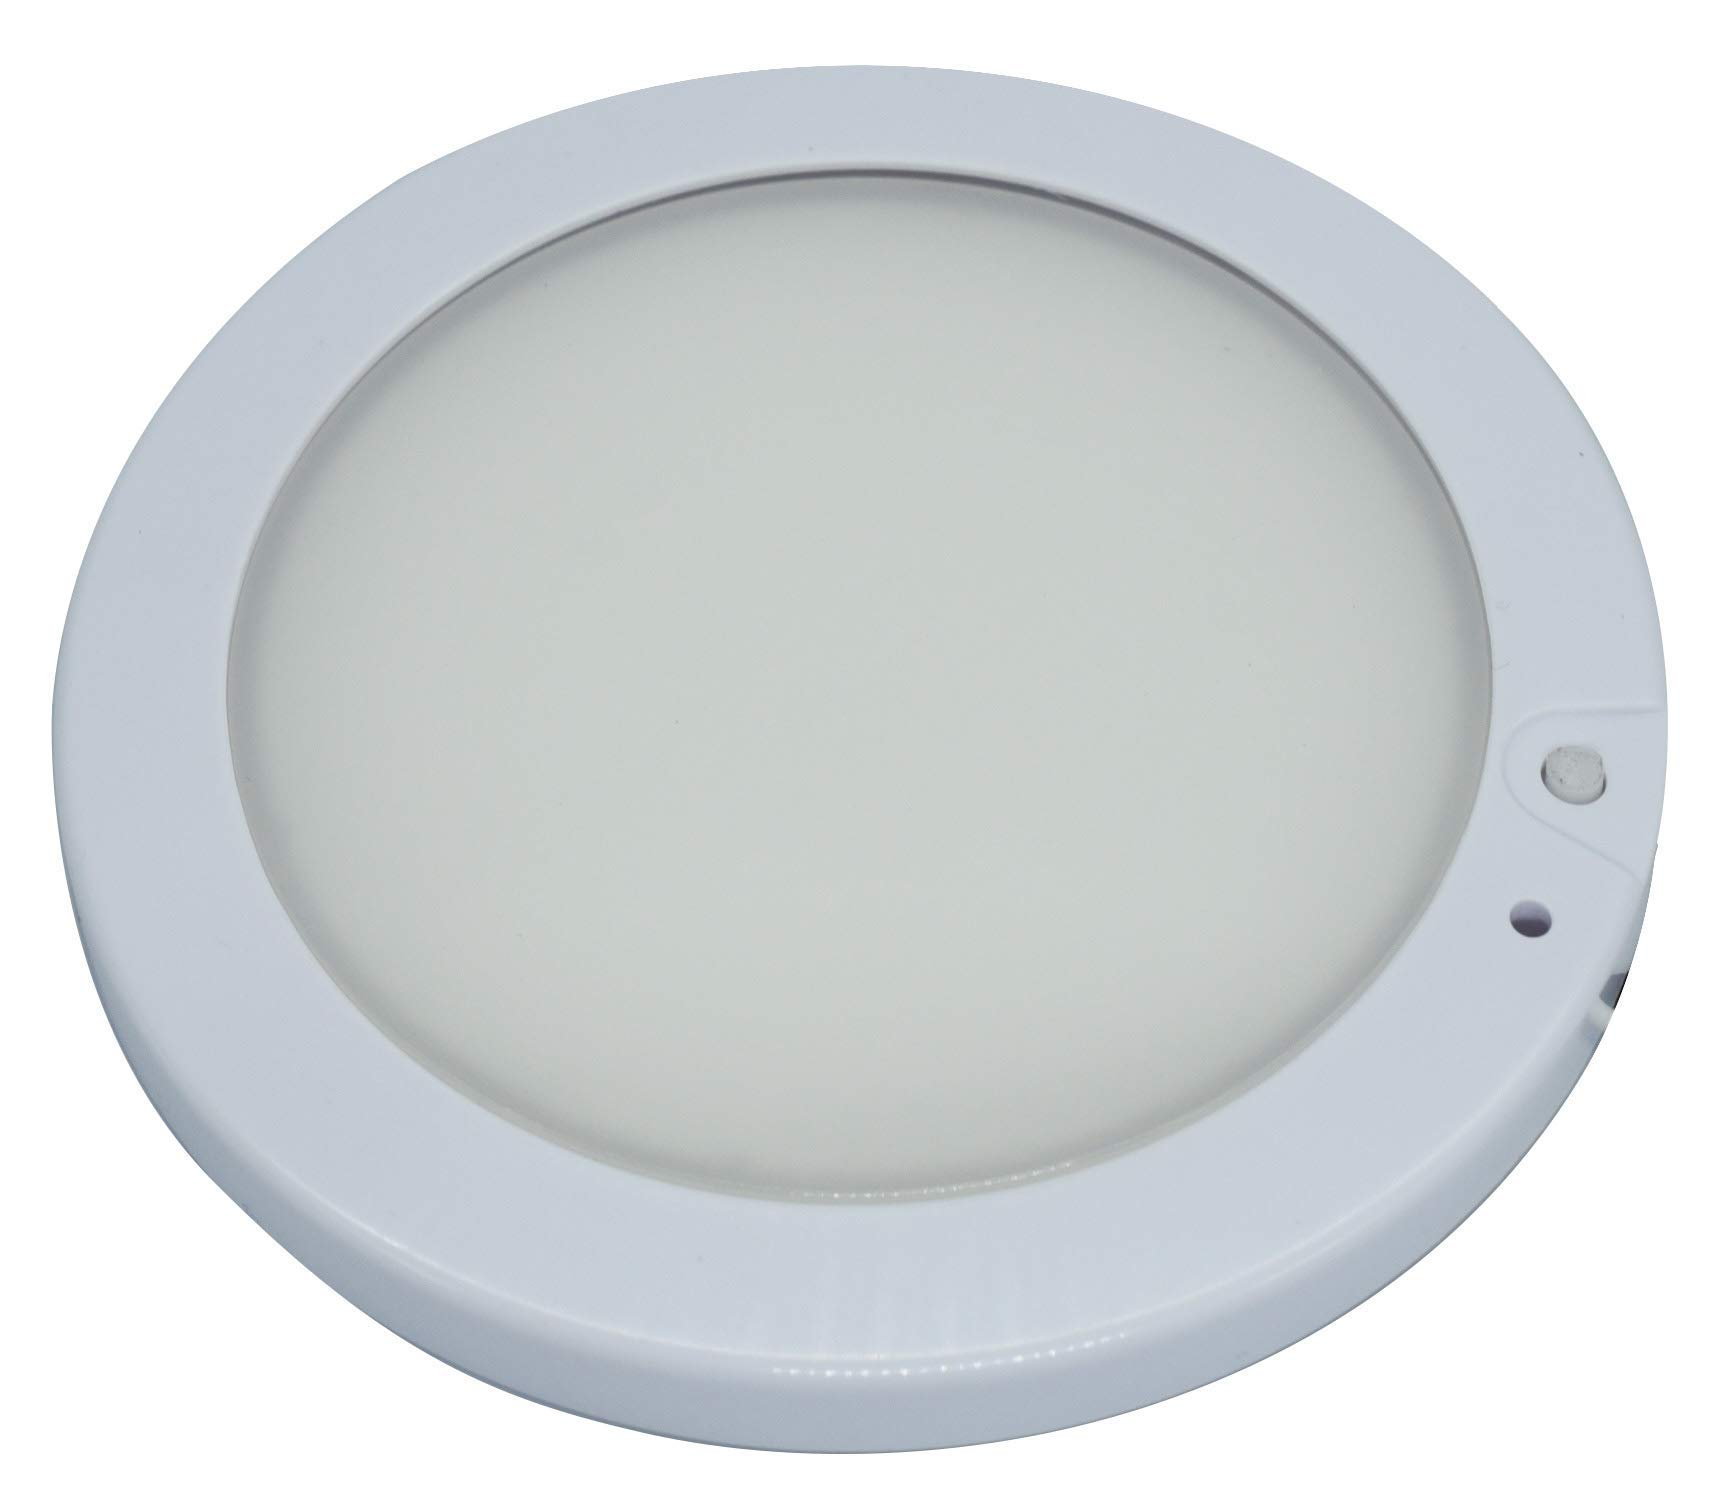 CDM product Facon 5Inch LED RV Panel Light Surface Mount 12V DC Interior Light with On&Off Switch and Indicator for RV Motorhome Camper Caravan Marine (Cool White) big image